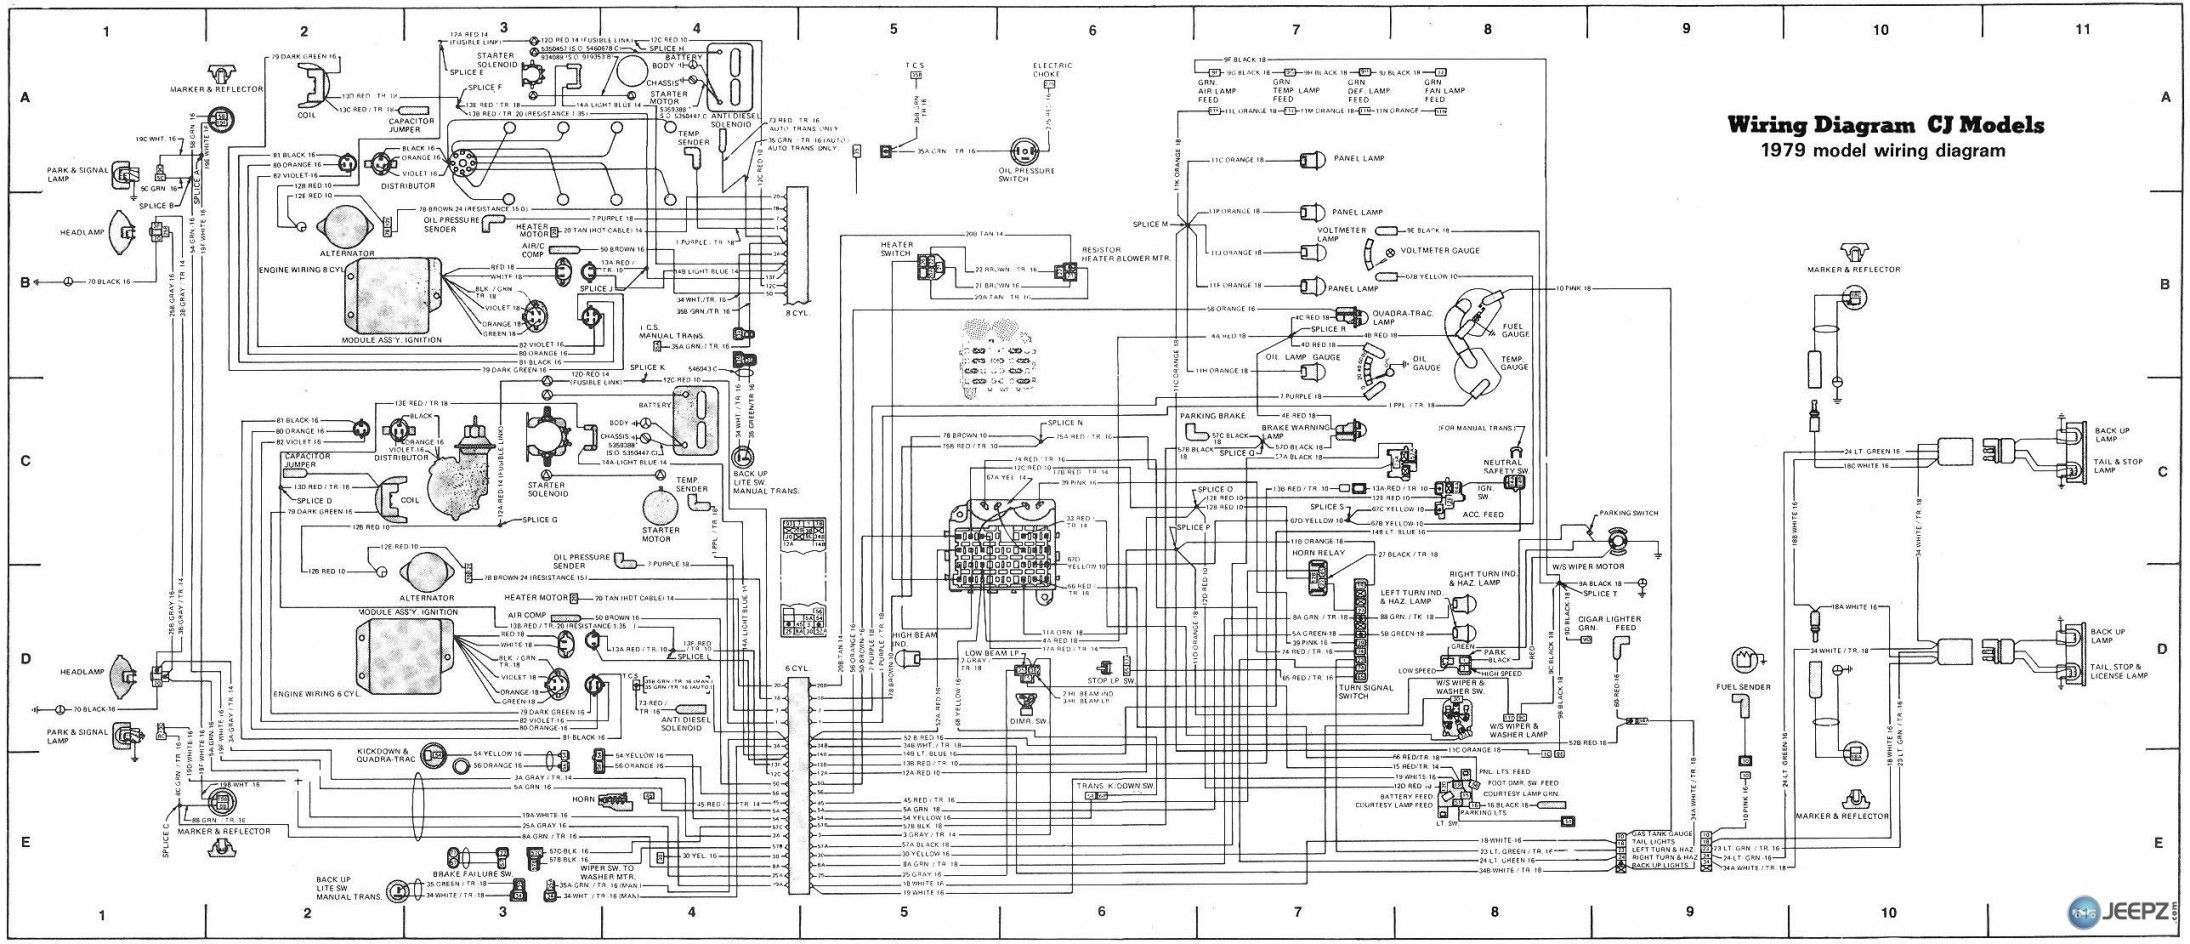 small resolution of wiring diagram for jeep cj7 auto diagram database 1983 jeep cj7 gauge cluster wiring diagram